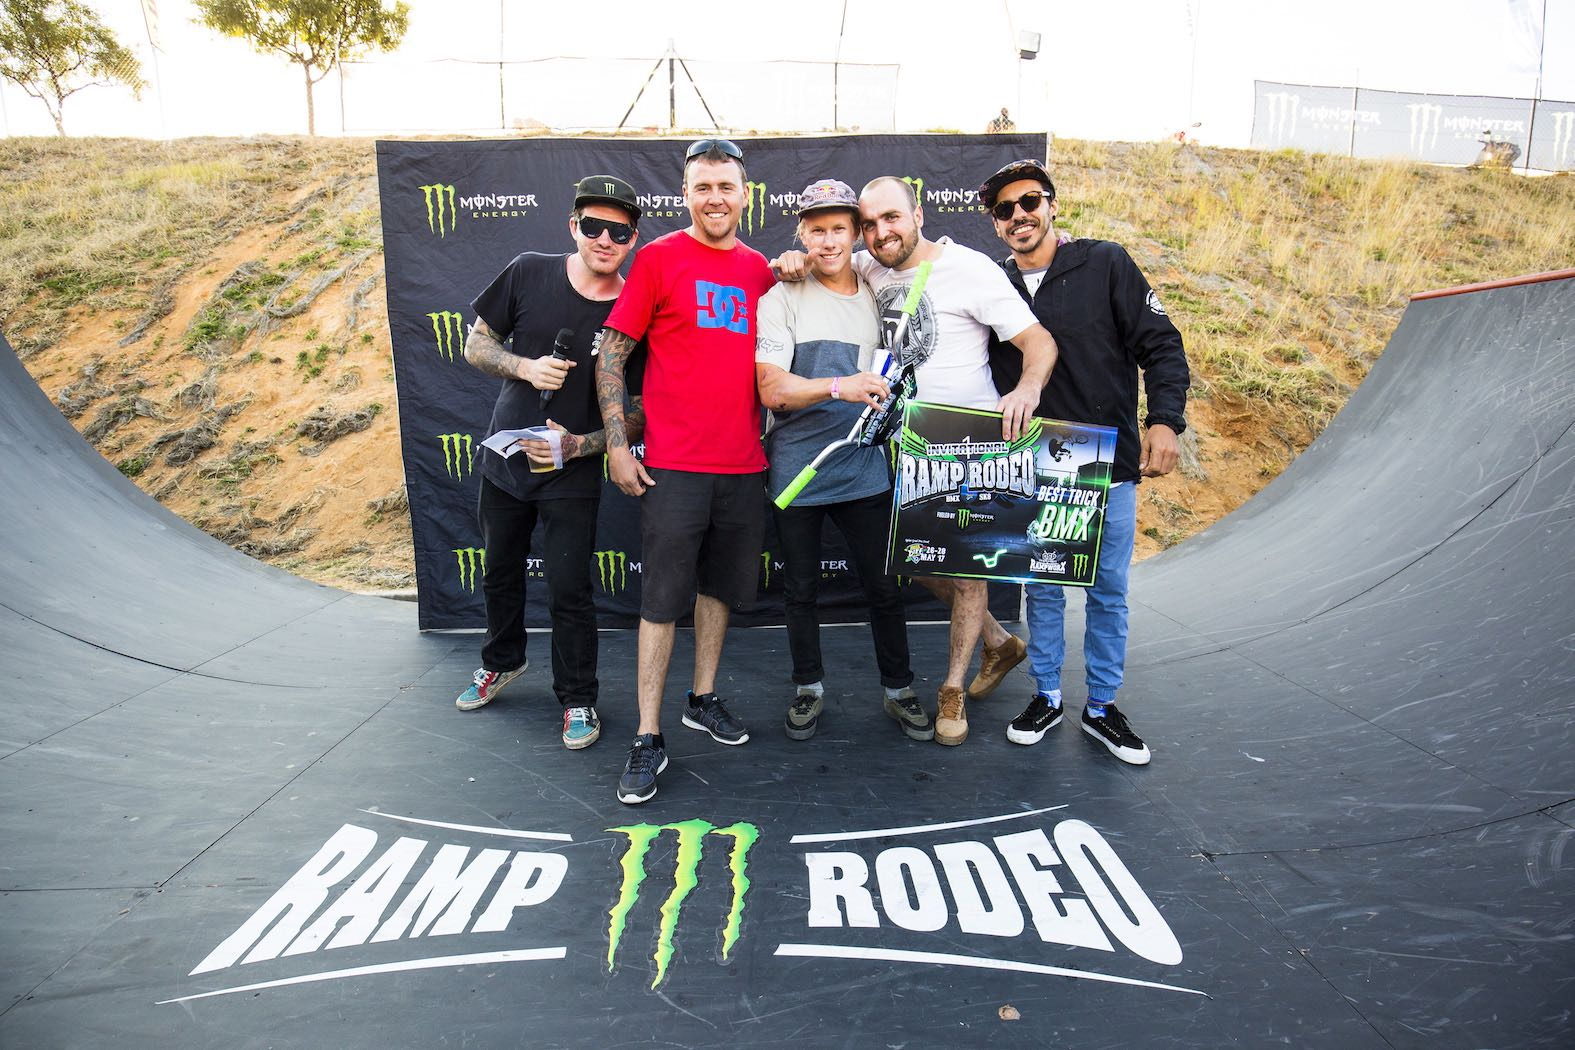 Ramp Rodeo Invitational 1 BMX Podium